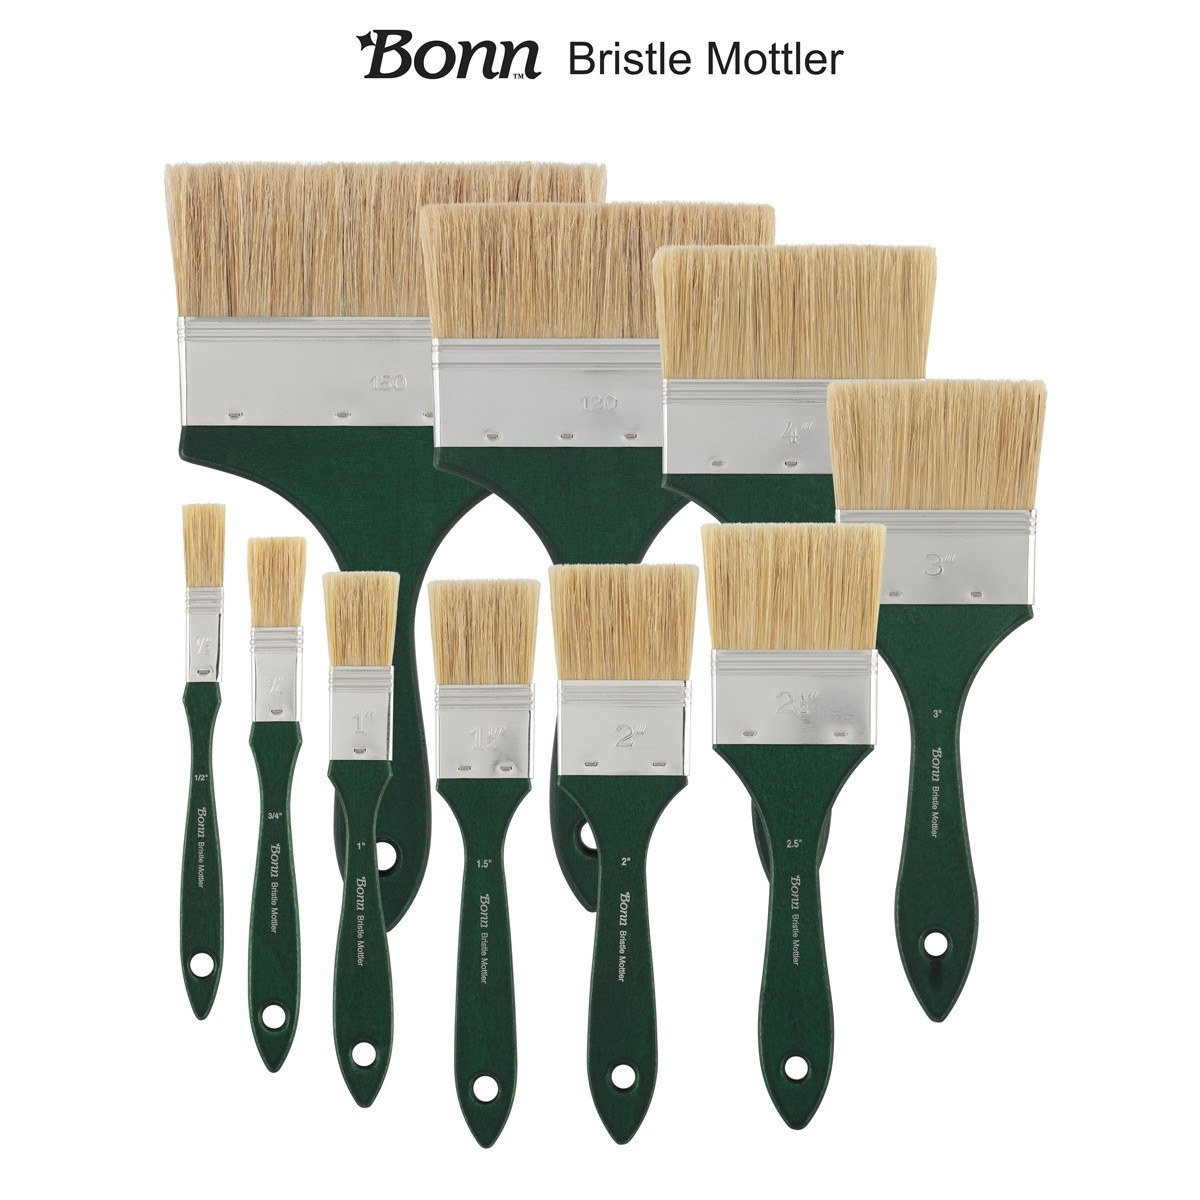 Creative Mark Bonn Bristle Blend Mottlers